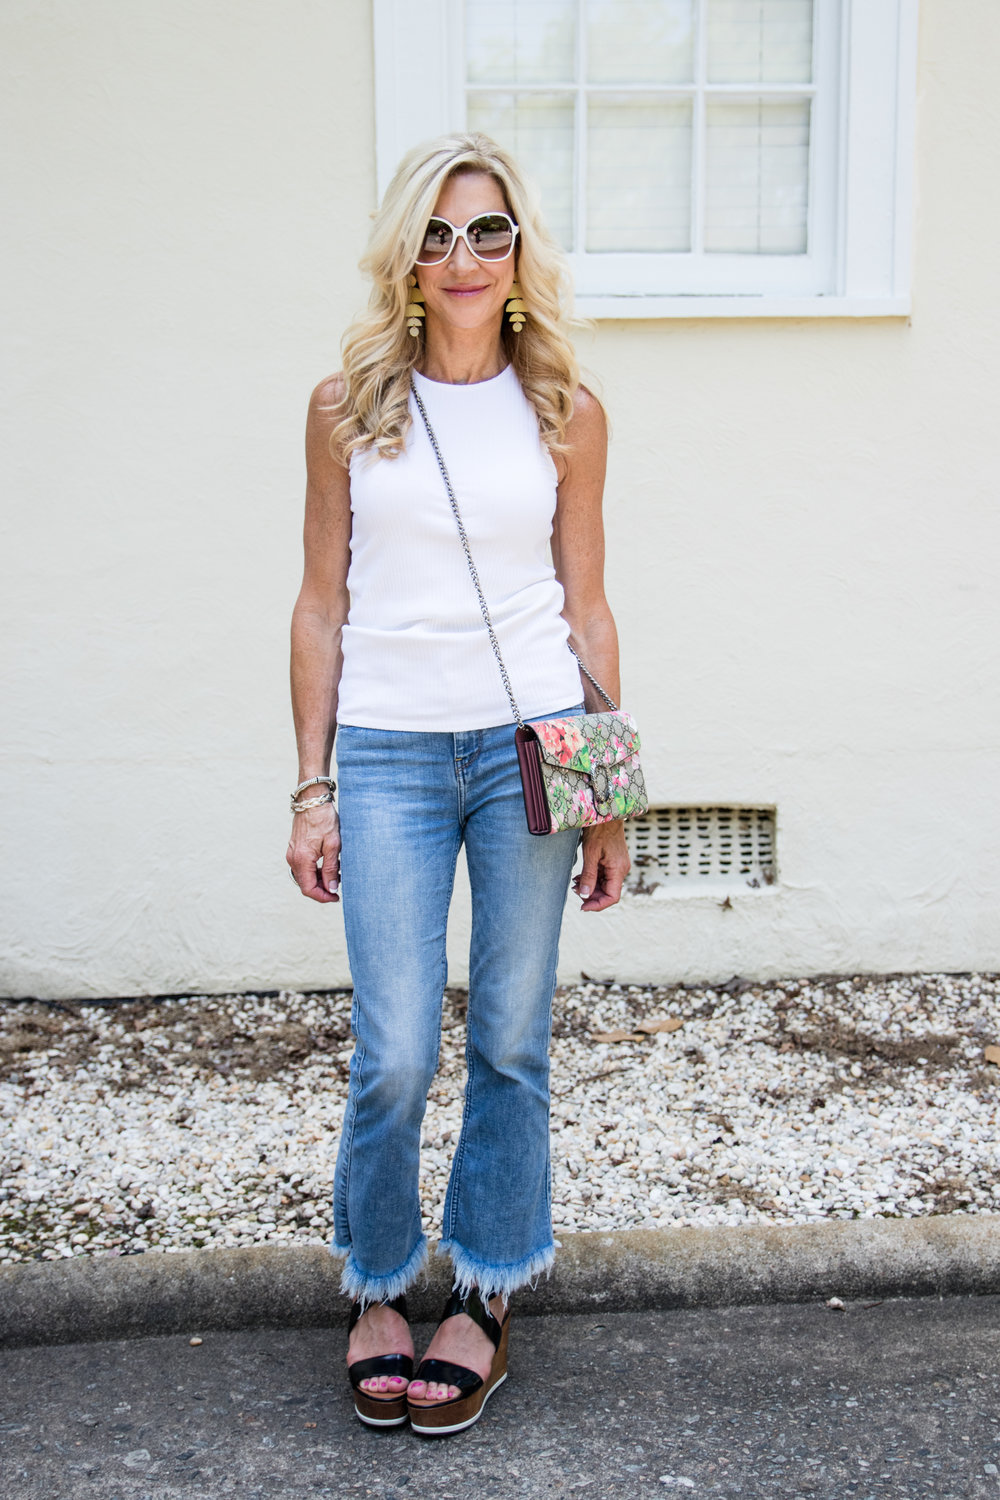 Cropped jeans with white top, YSL platforms and Gucci bag